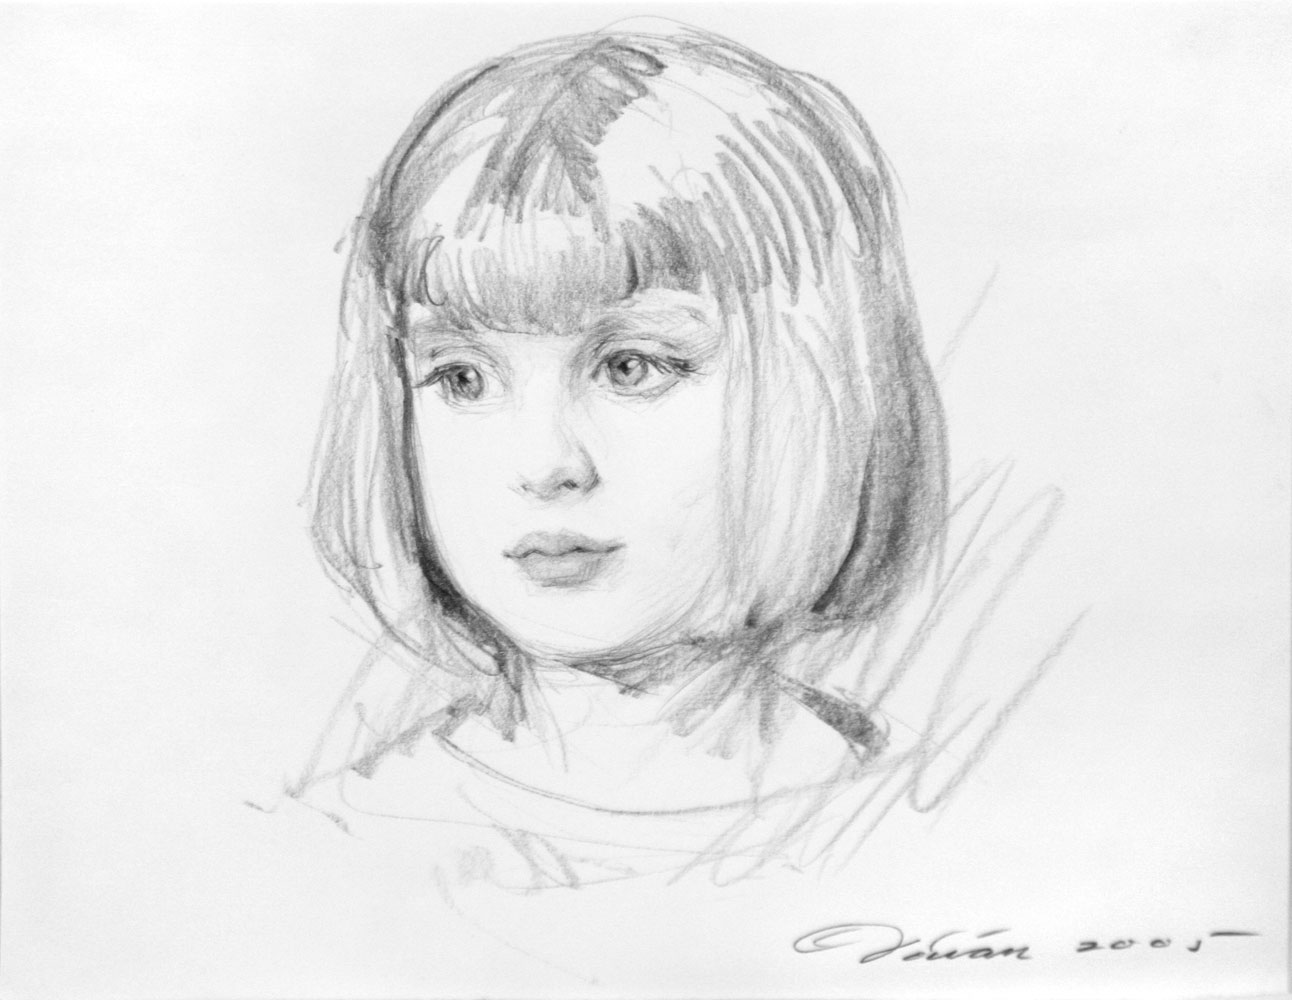 Pencil_Sketches_37.jpg